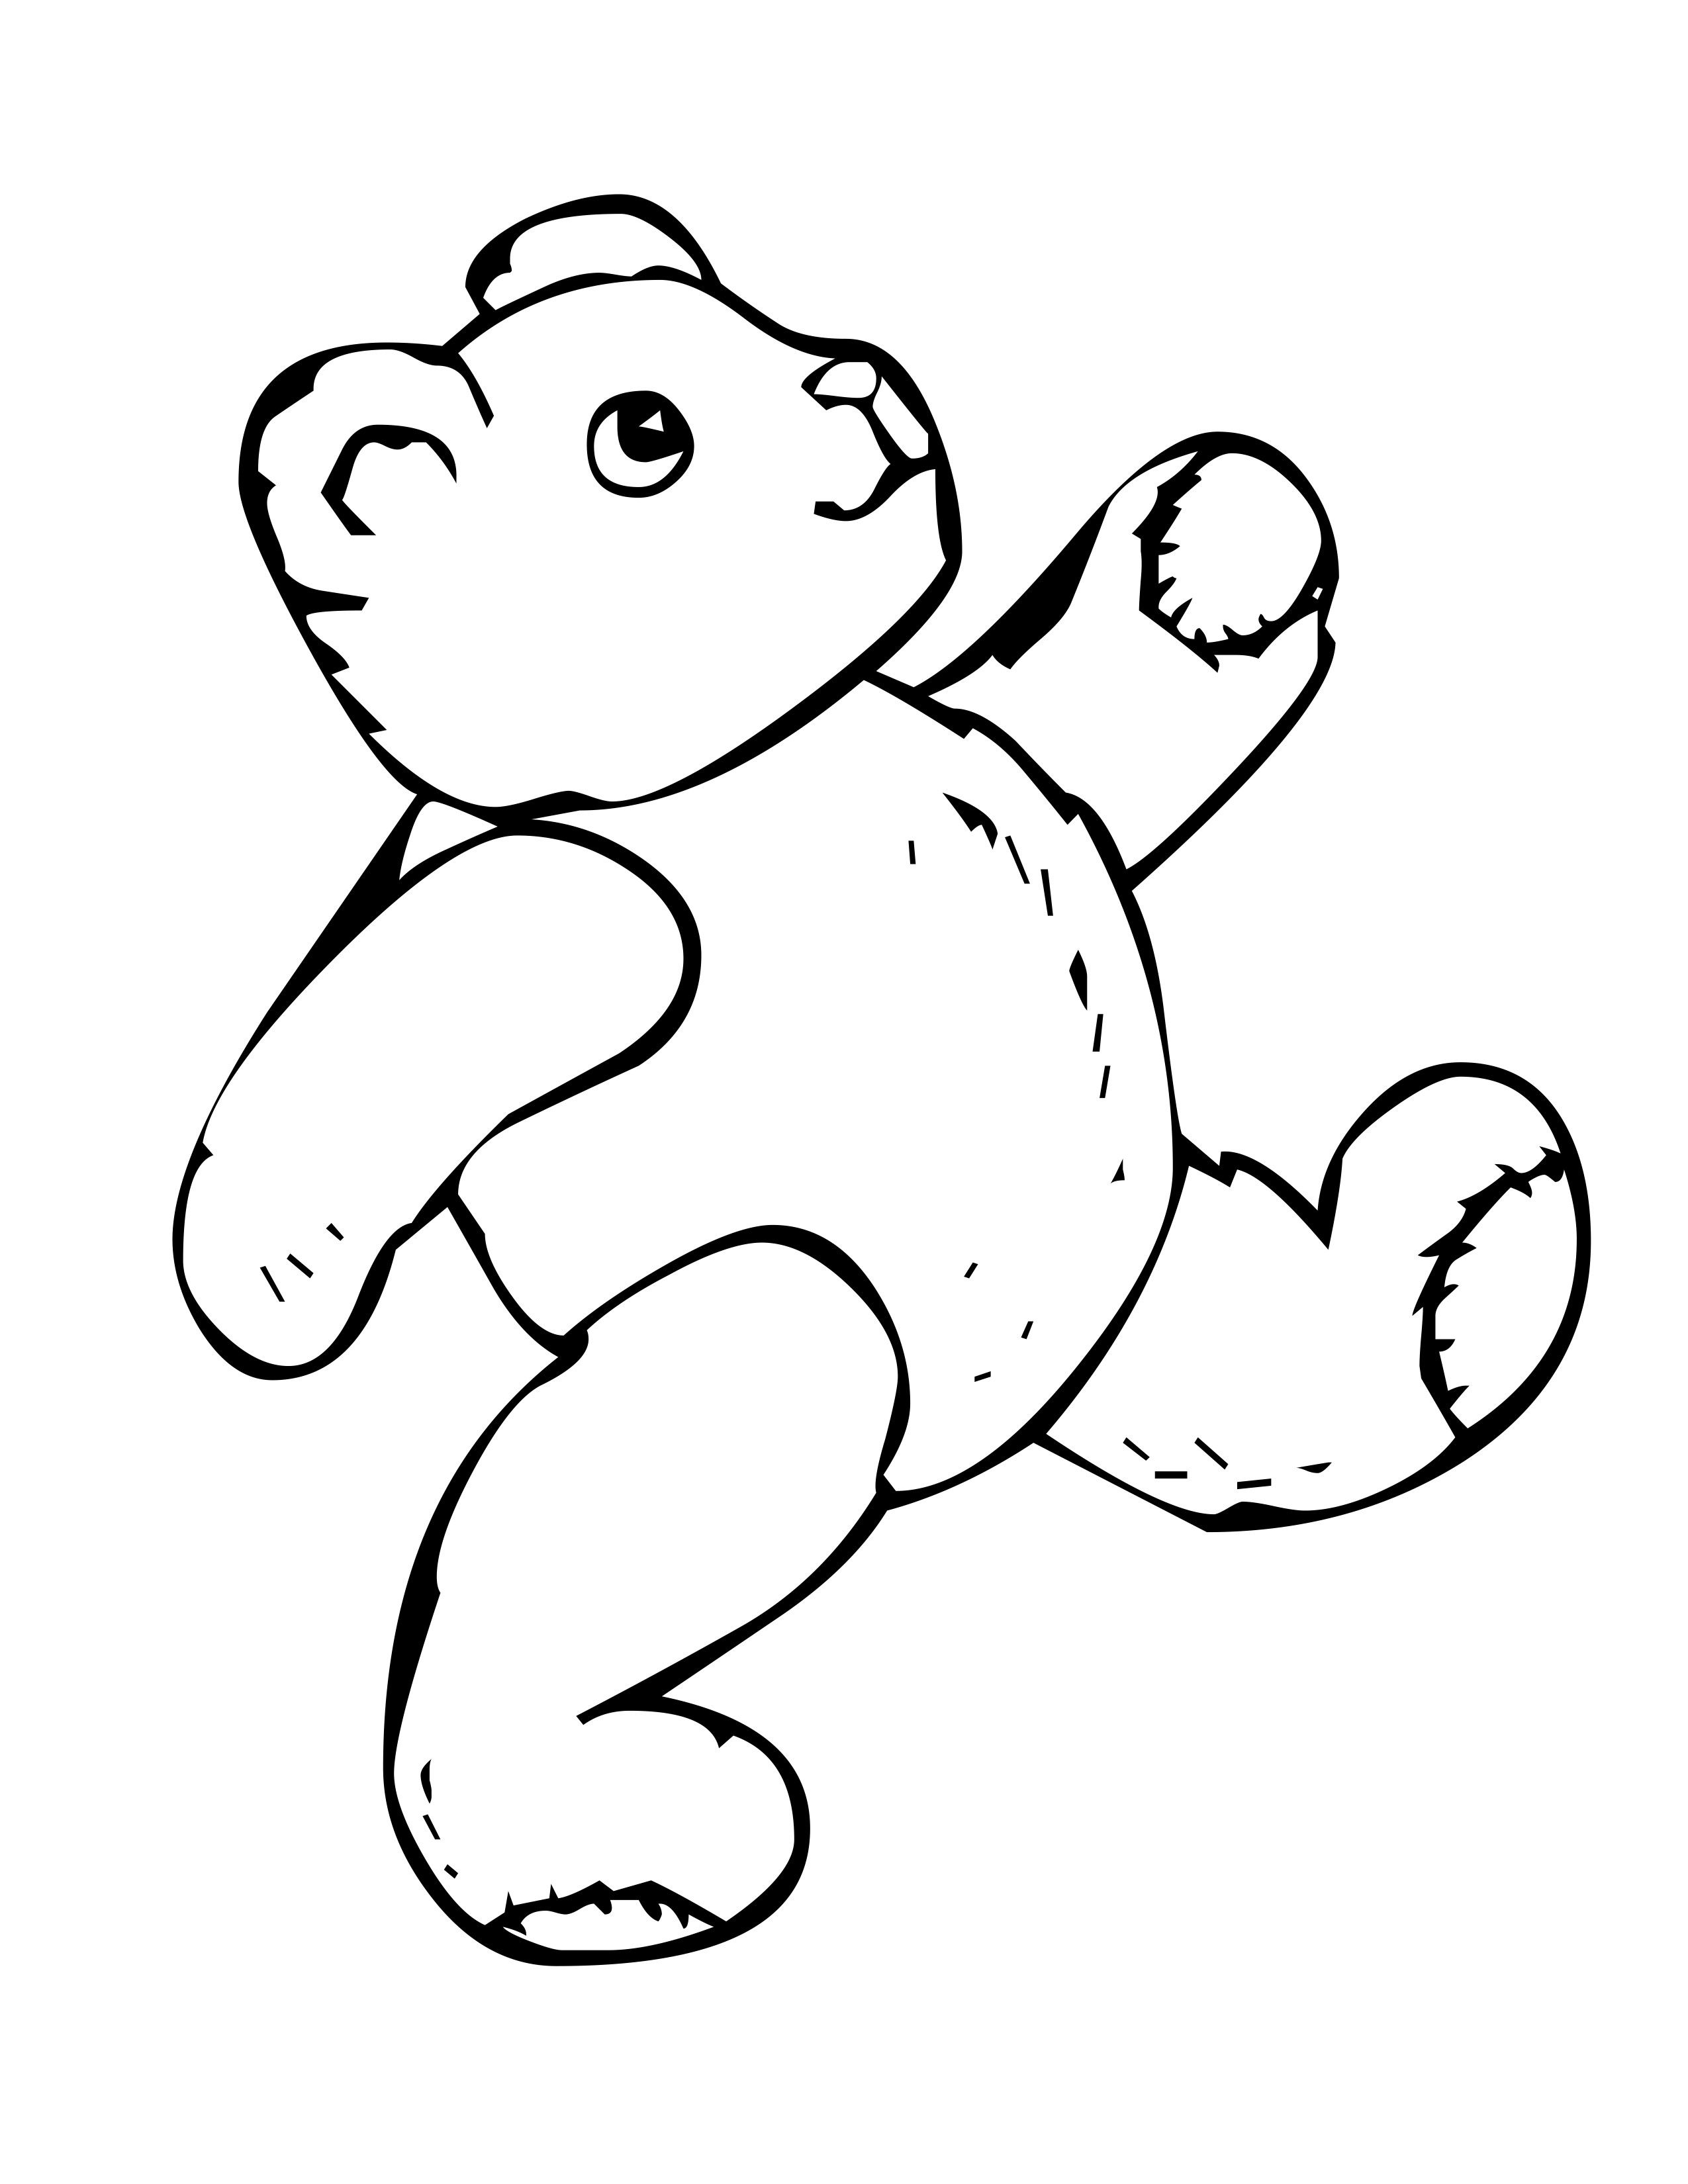 Teddy Bear Coloring Pages Free Coloring Pages | Teddy\'s | Pinterest ...